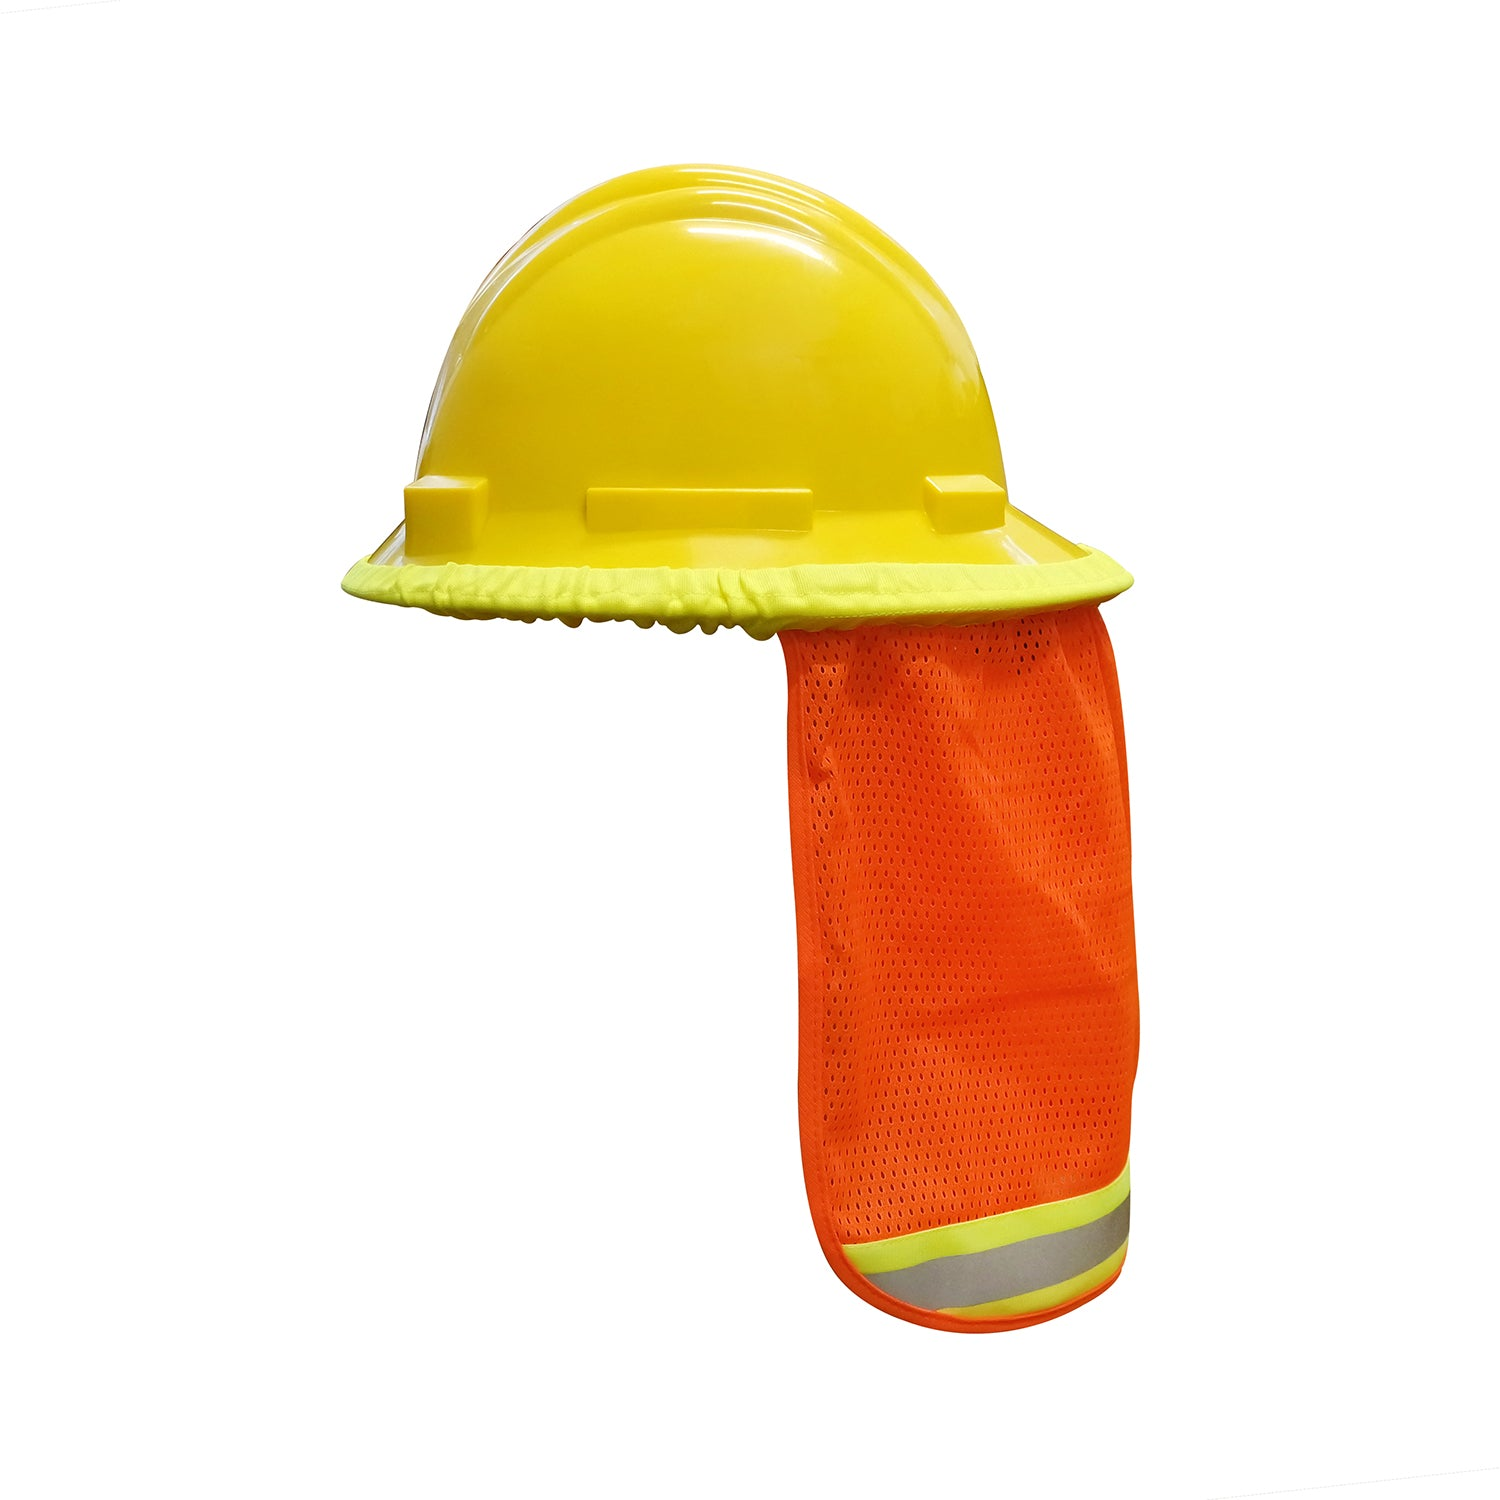 Aware Wear Mesh Hard Hat Neck Shield -Safety- eGPS Solutions Inc.